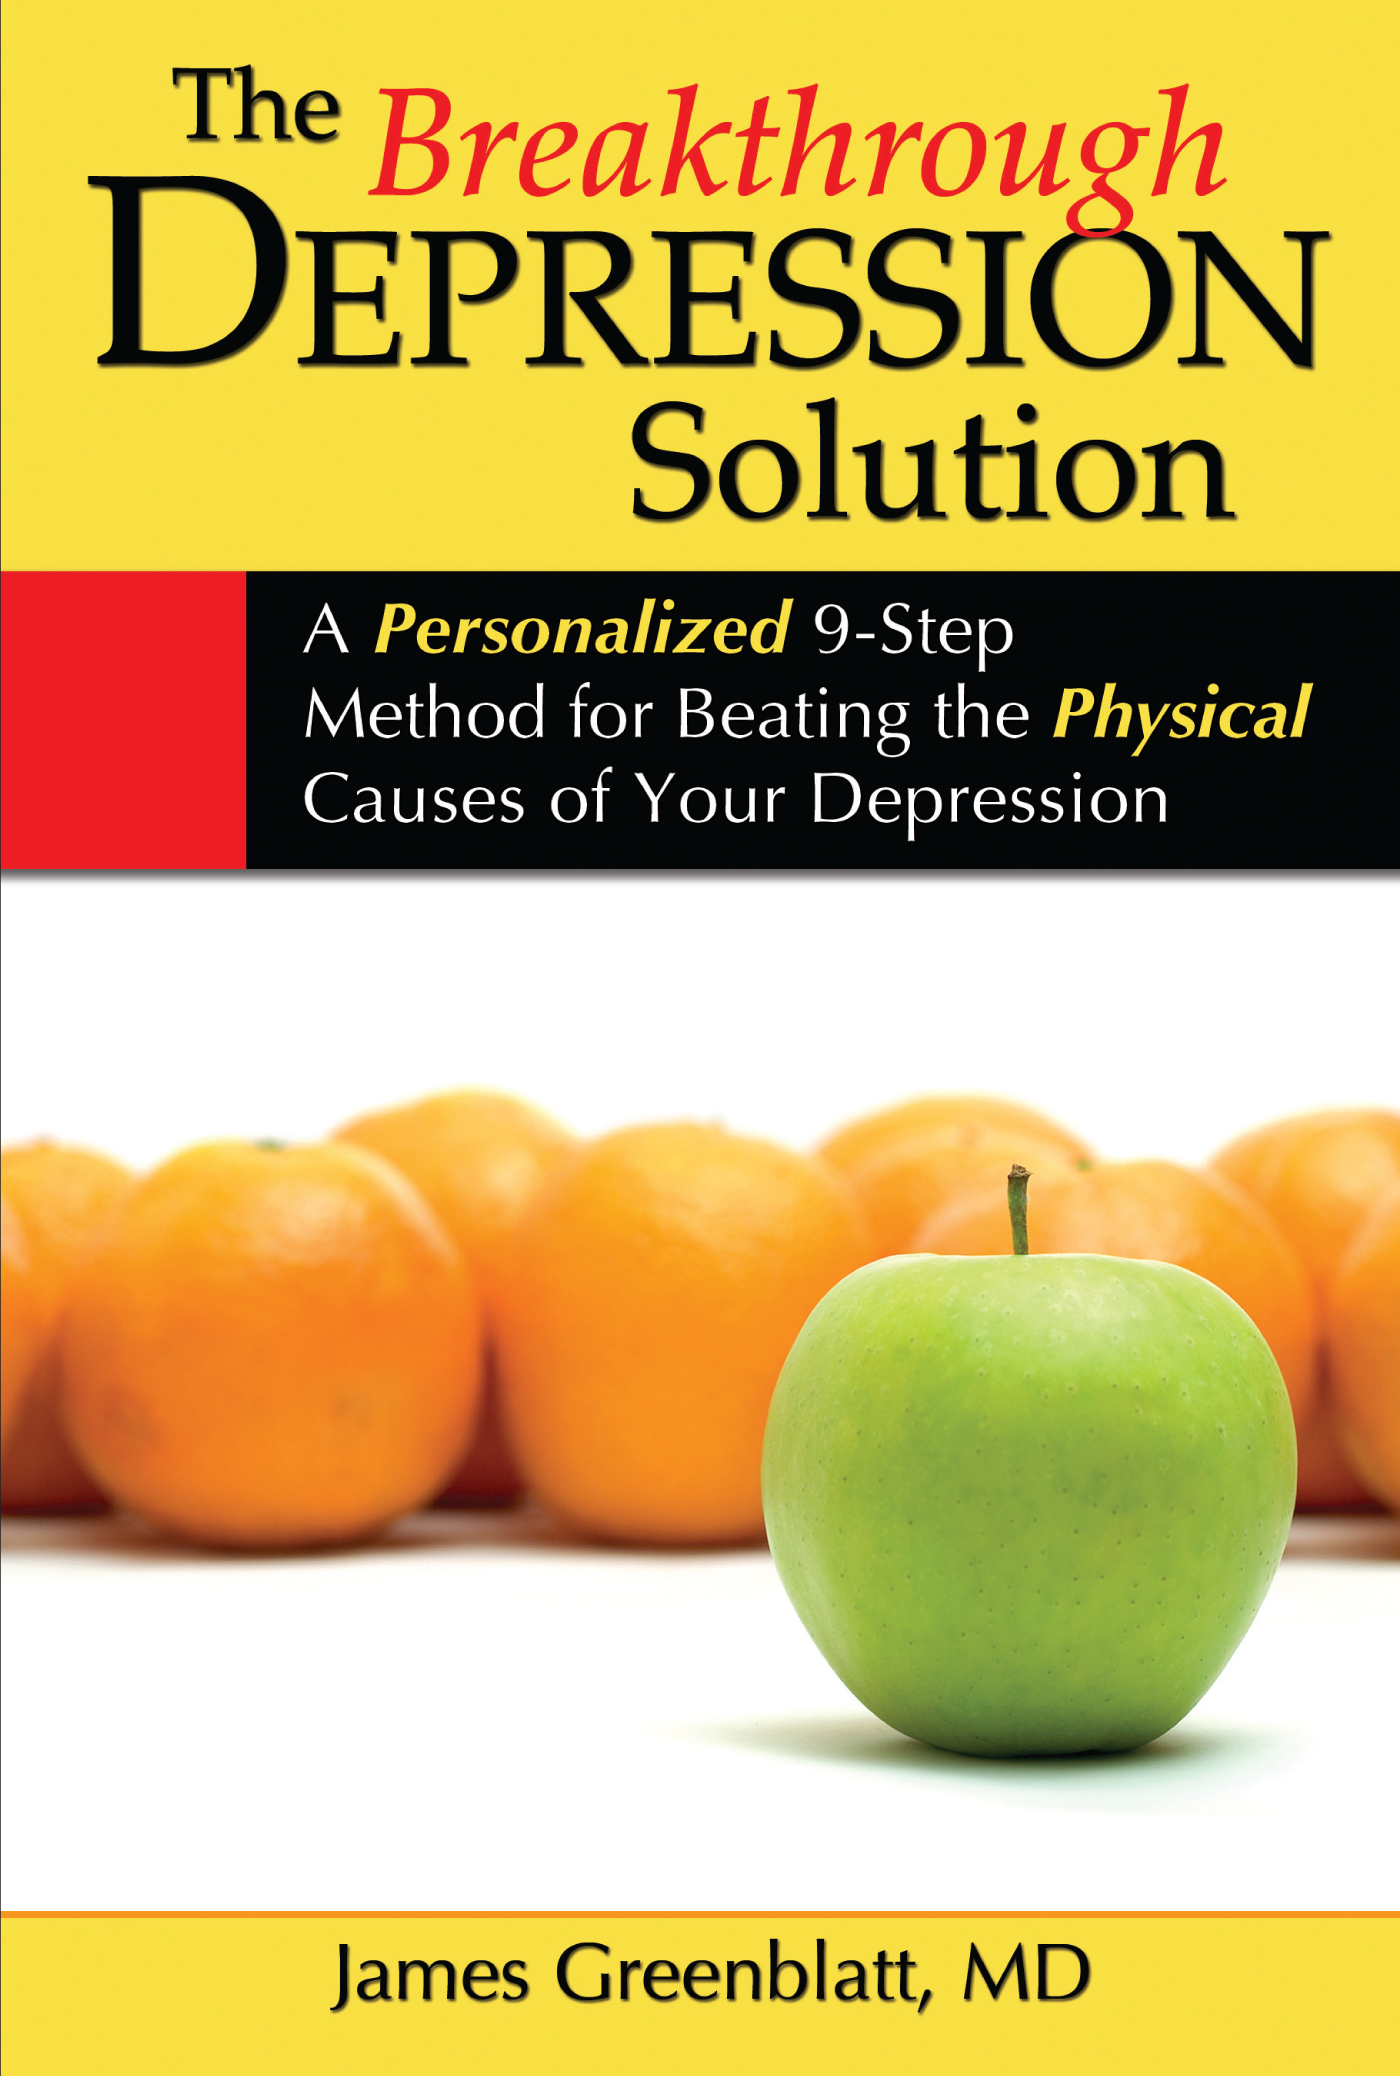 The Breakthrough Depression Solution By: James M. Greenblatt